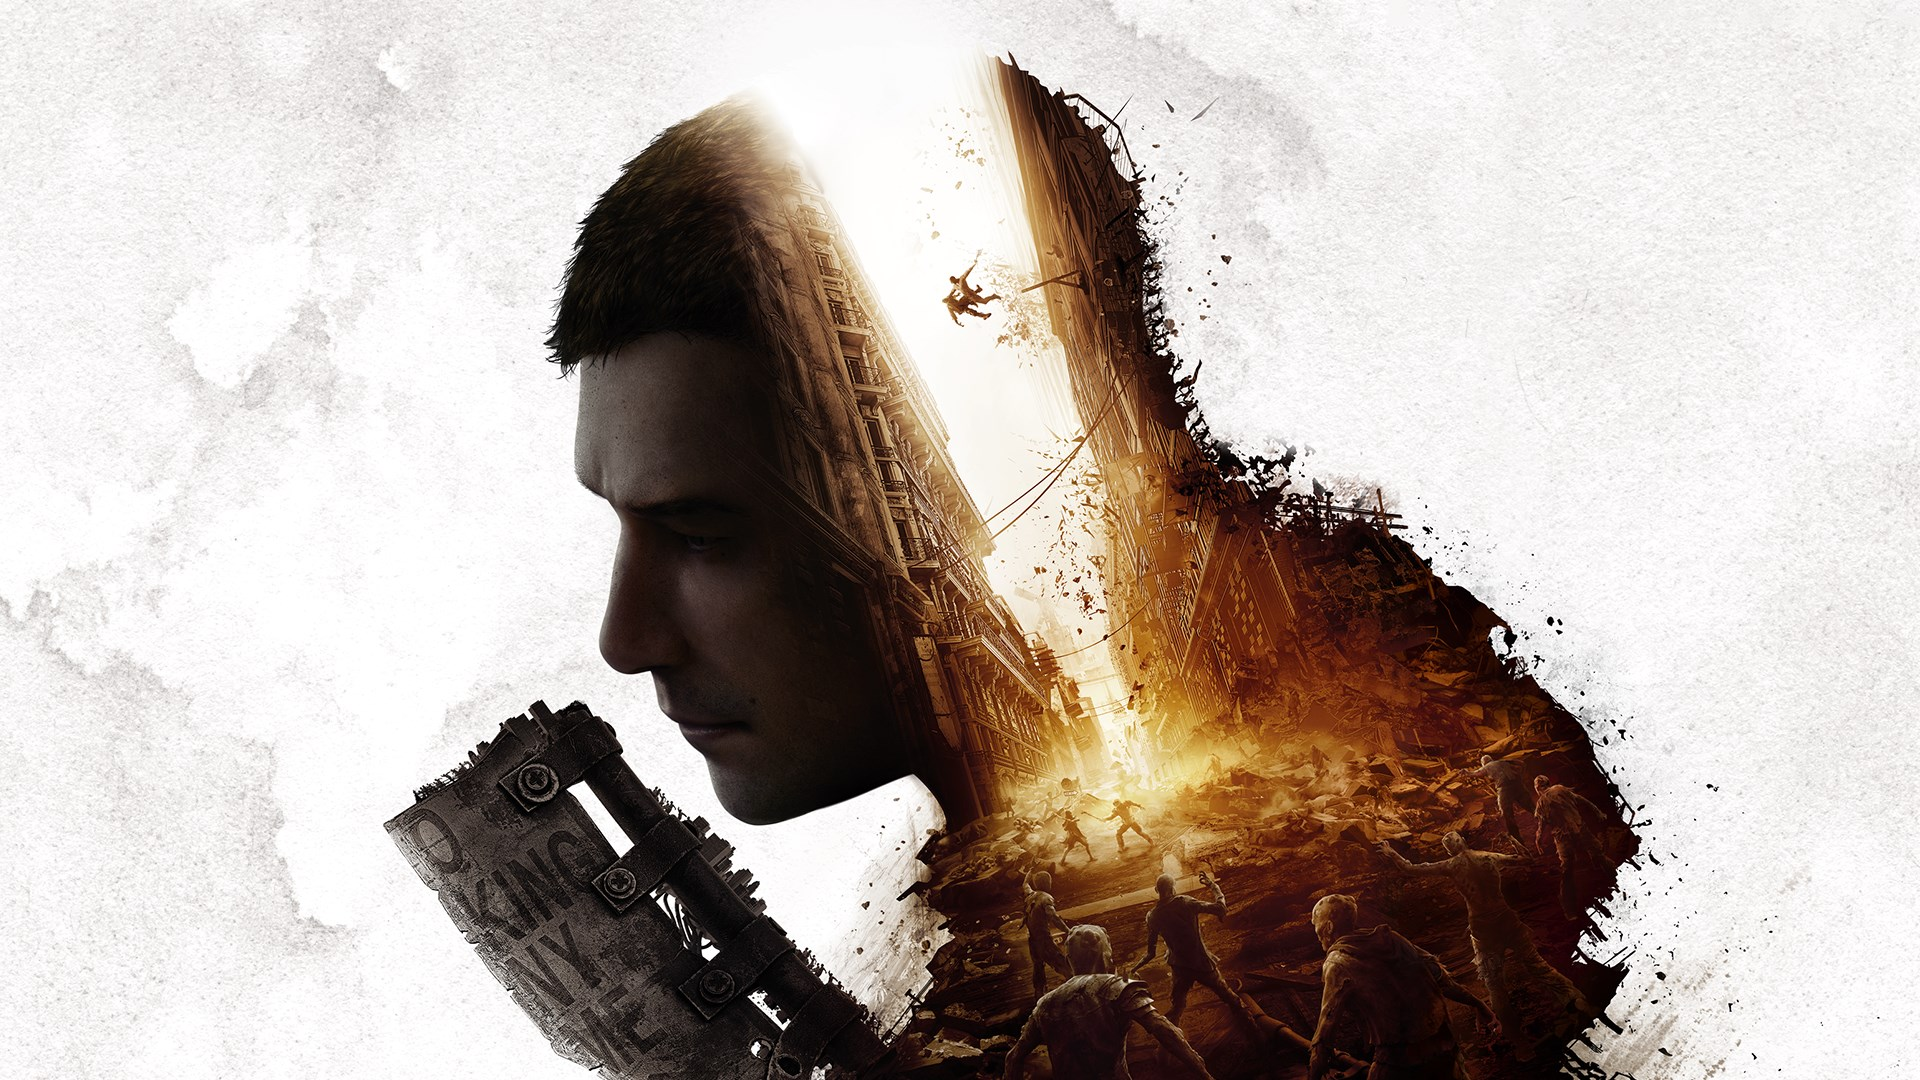 Dying Light 2 Stay Human Pre-order Available Now